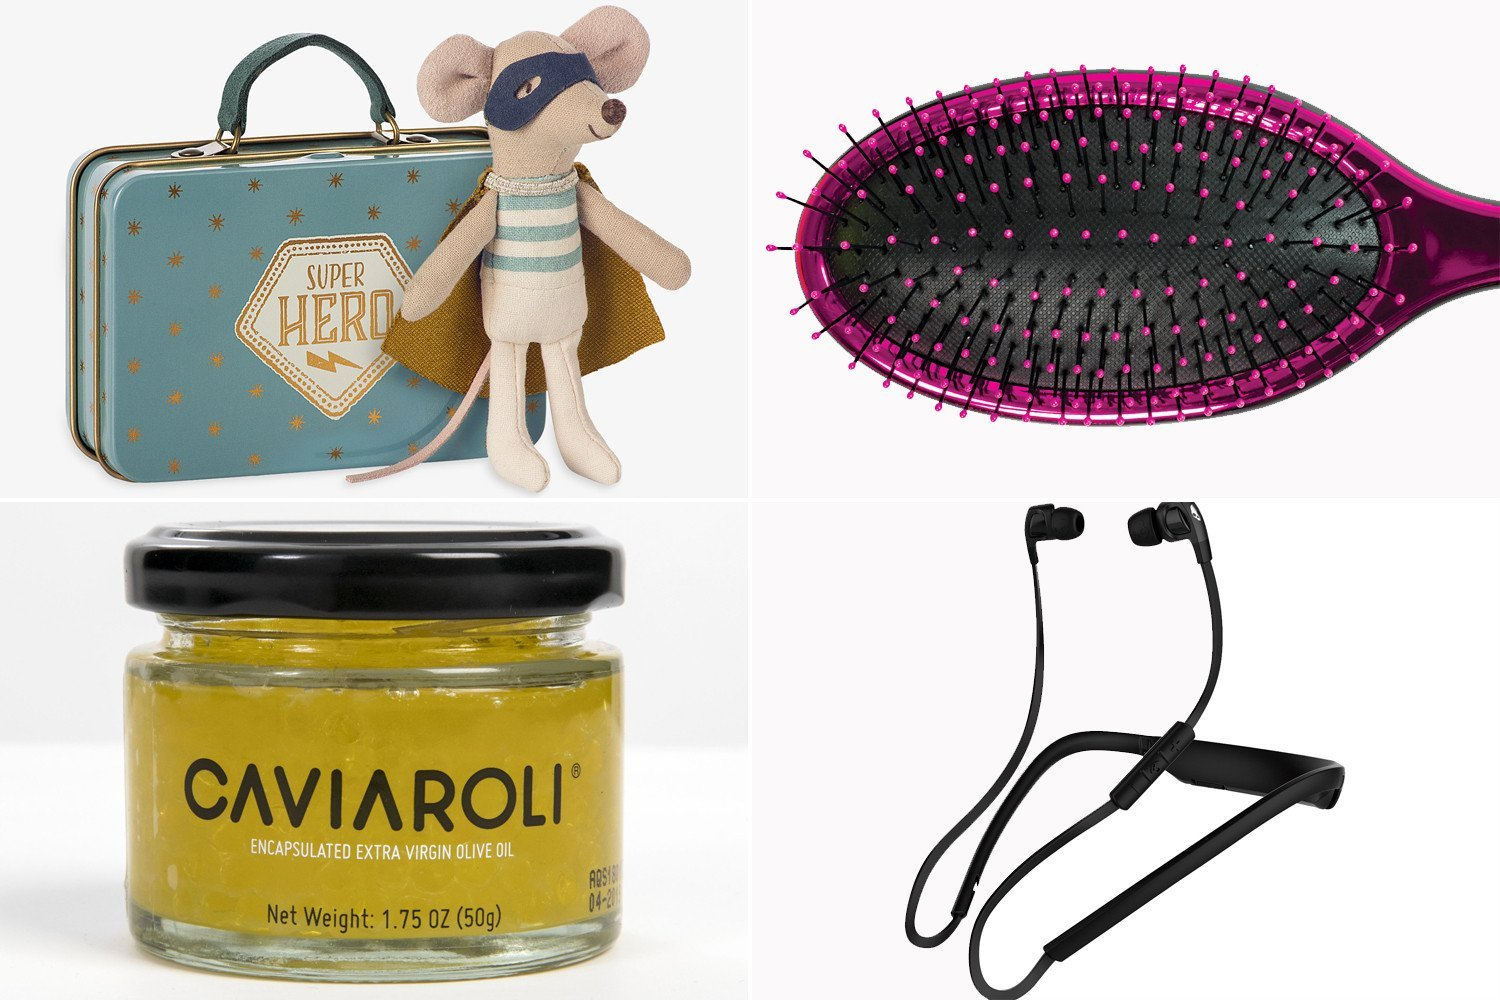 Great deals on last-minute gifts for the whole family